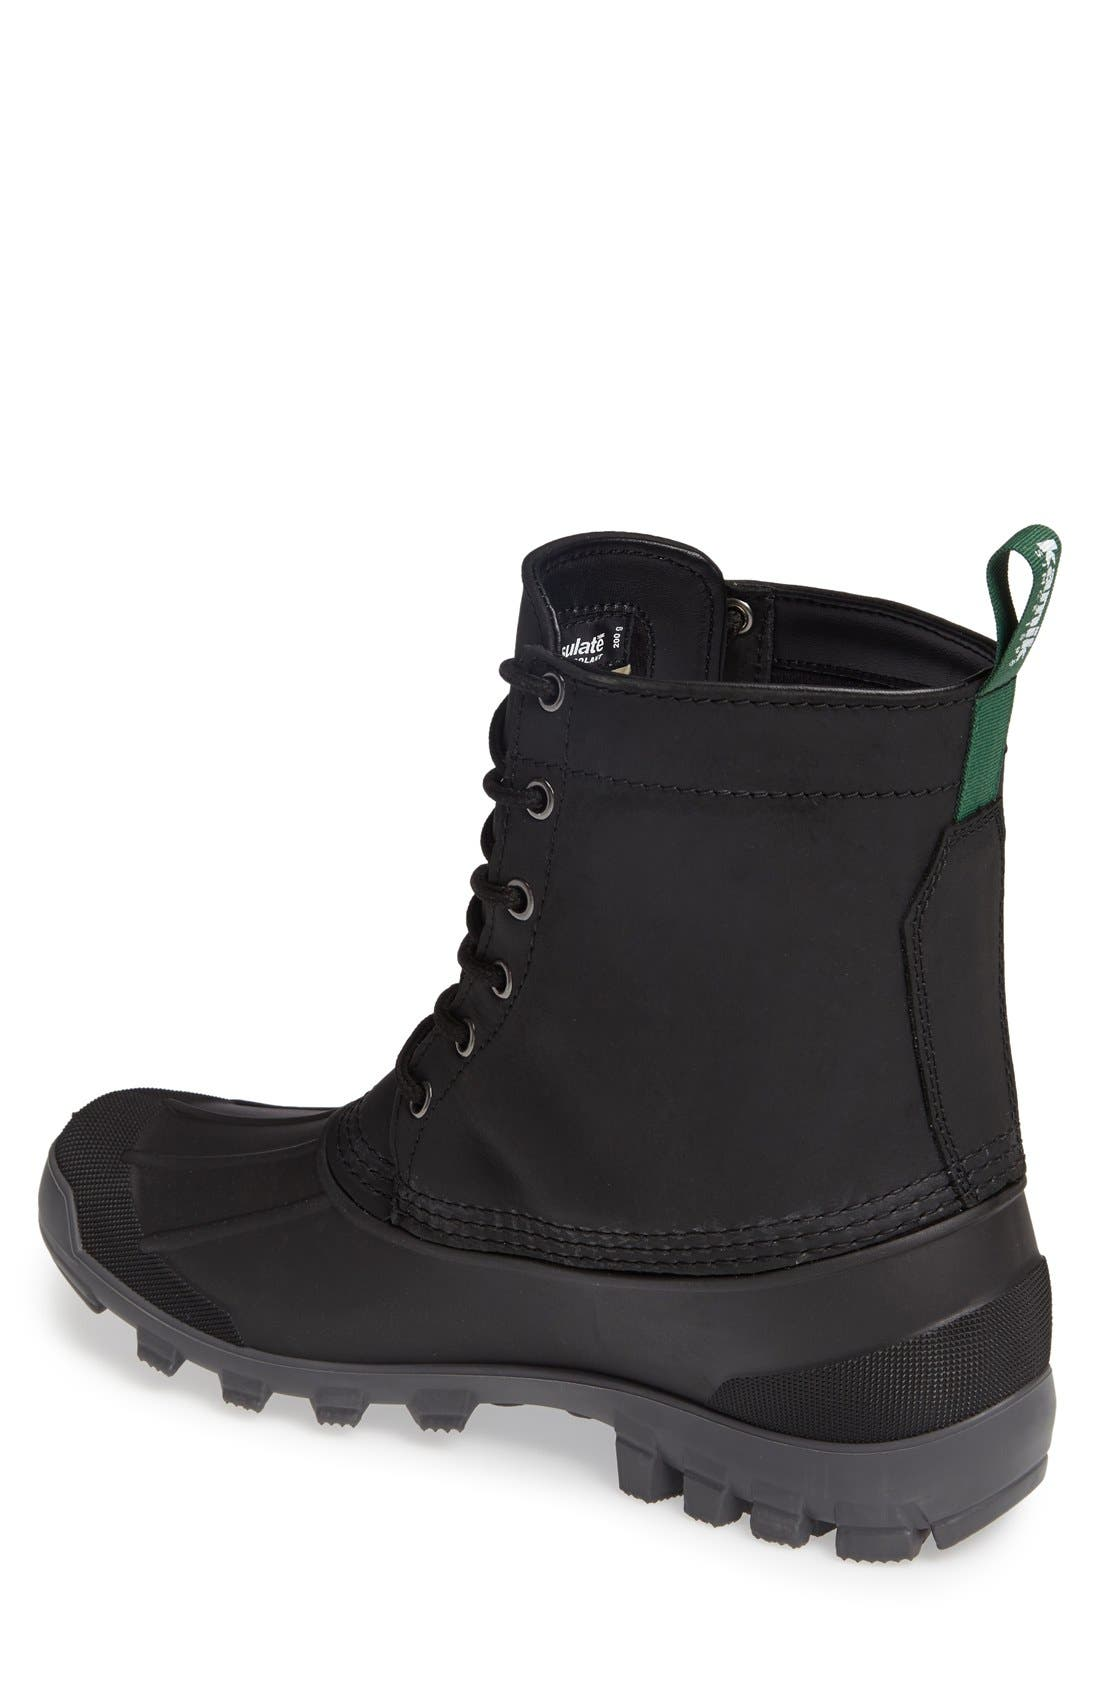 Alternate Image 2  - Kamik Yukon6 Waterproof Work Boot (Men)